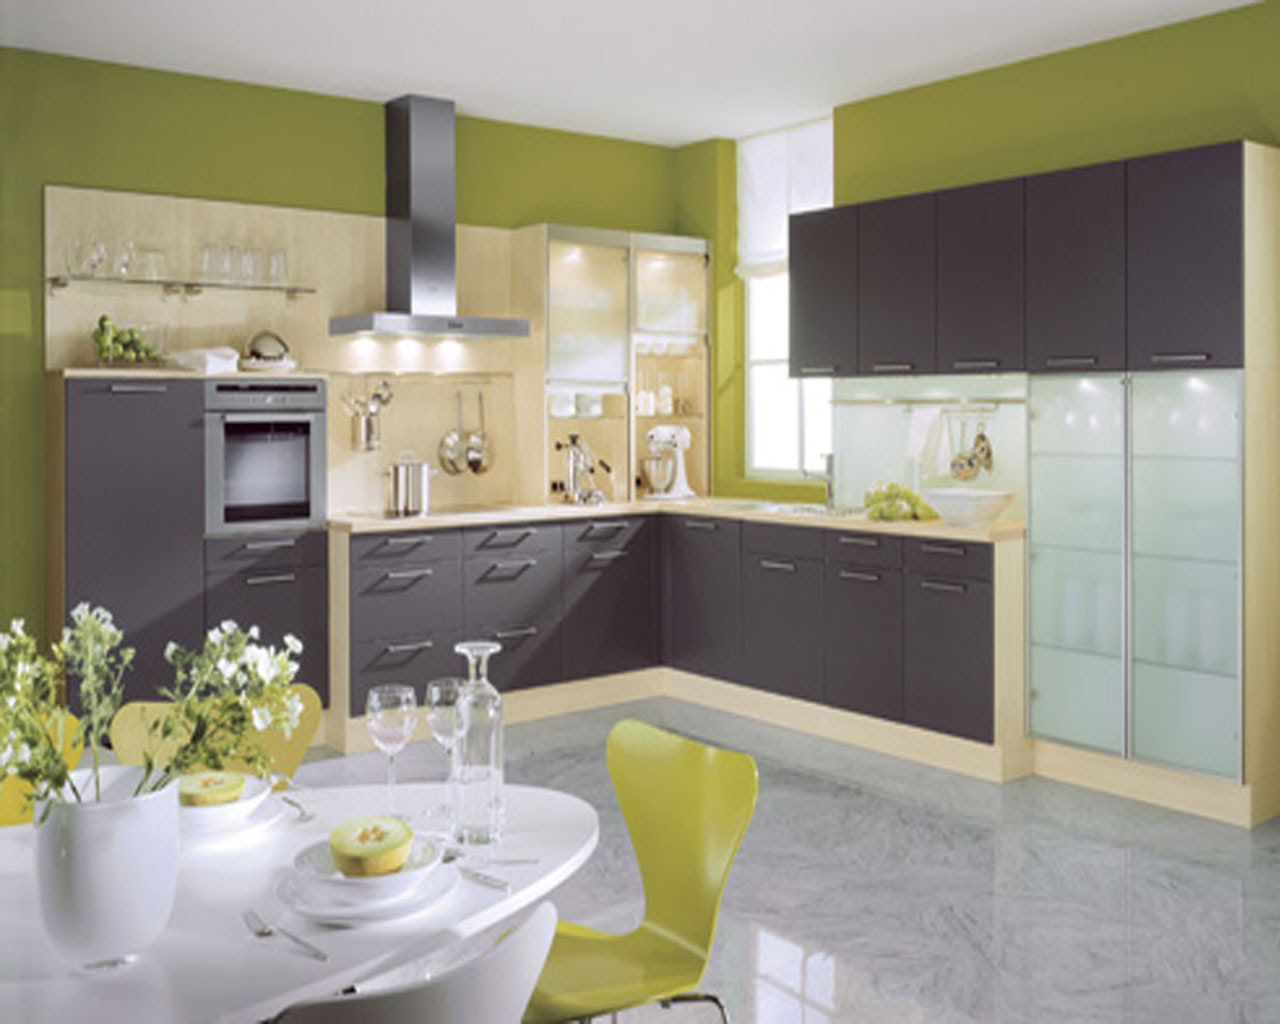 30 Best Kitchen Ideas For Your Home - The WoW Style